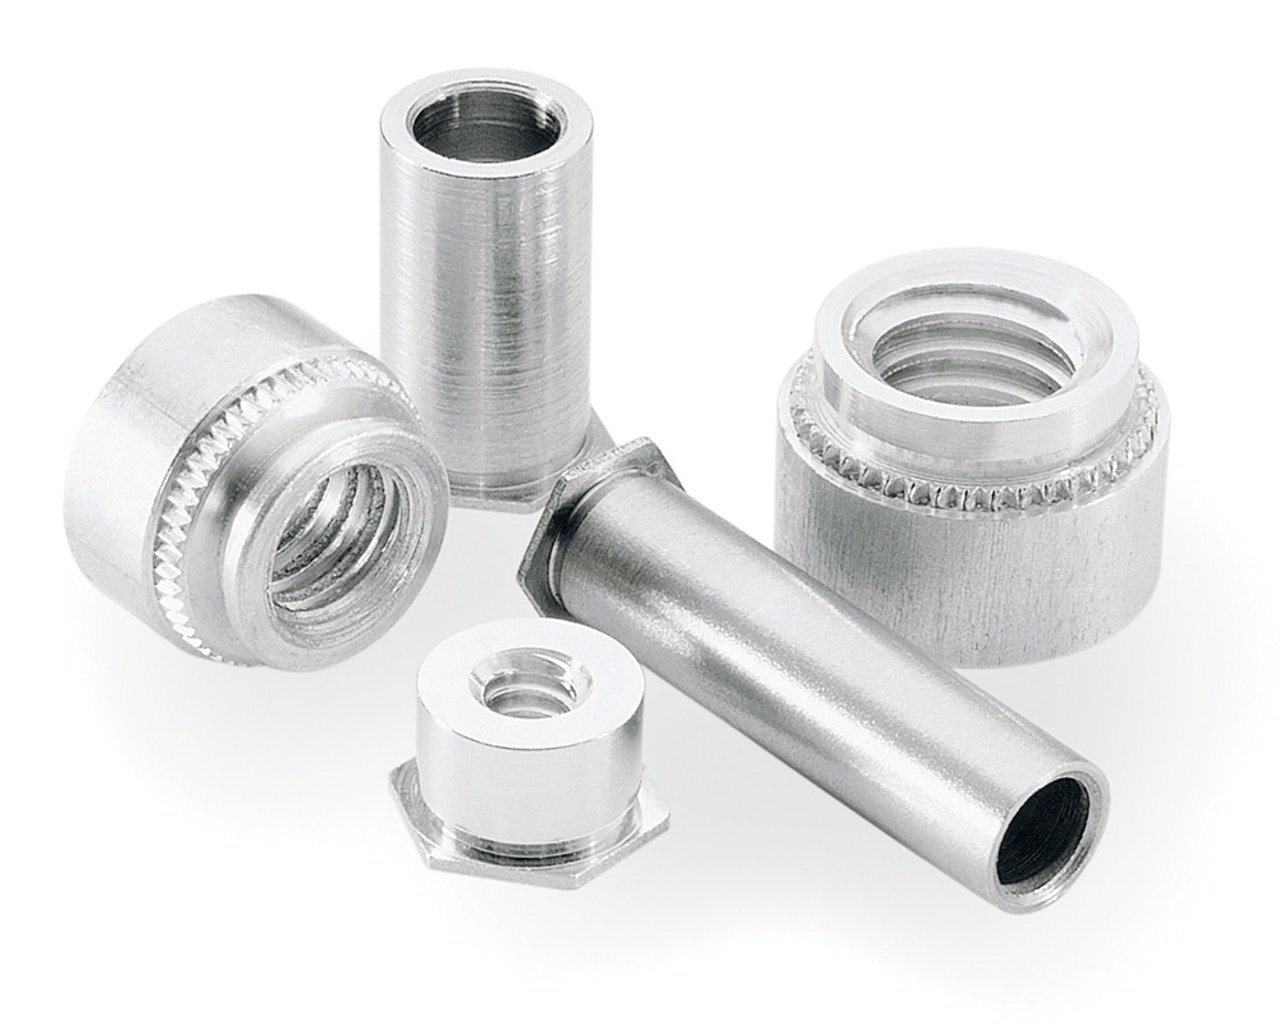 Custom fastener products from MW Components